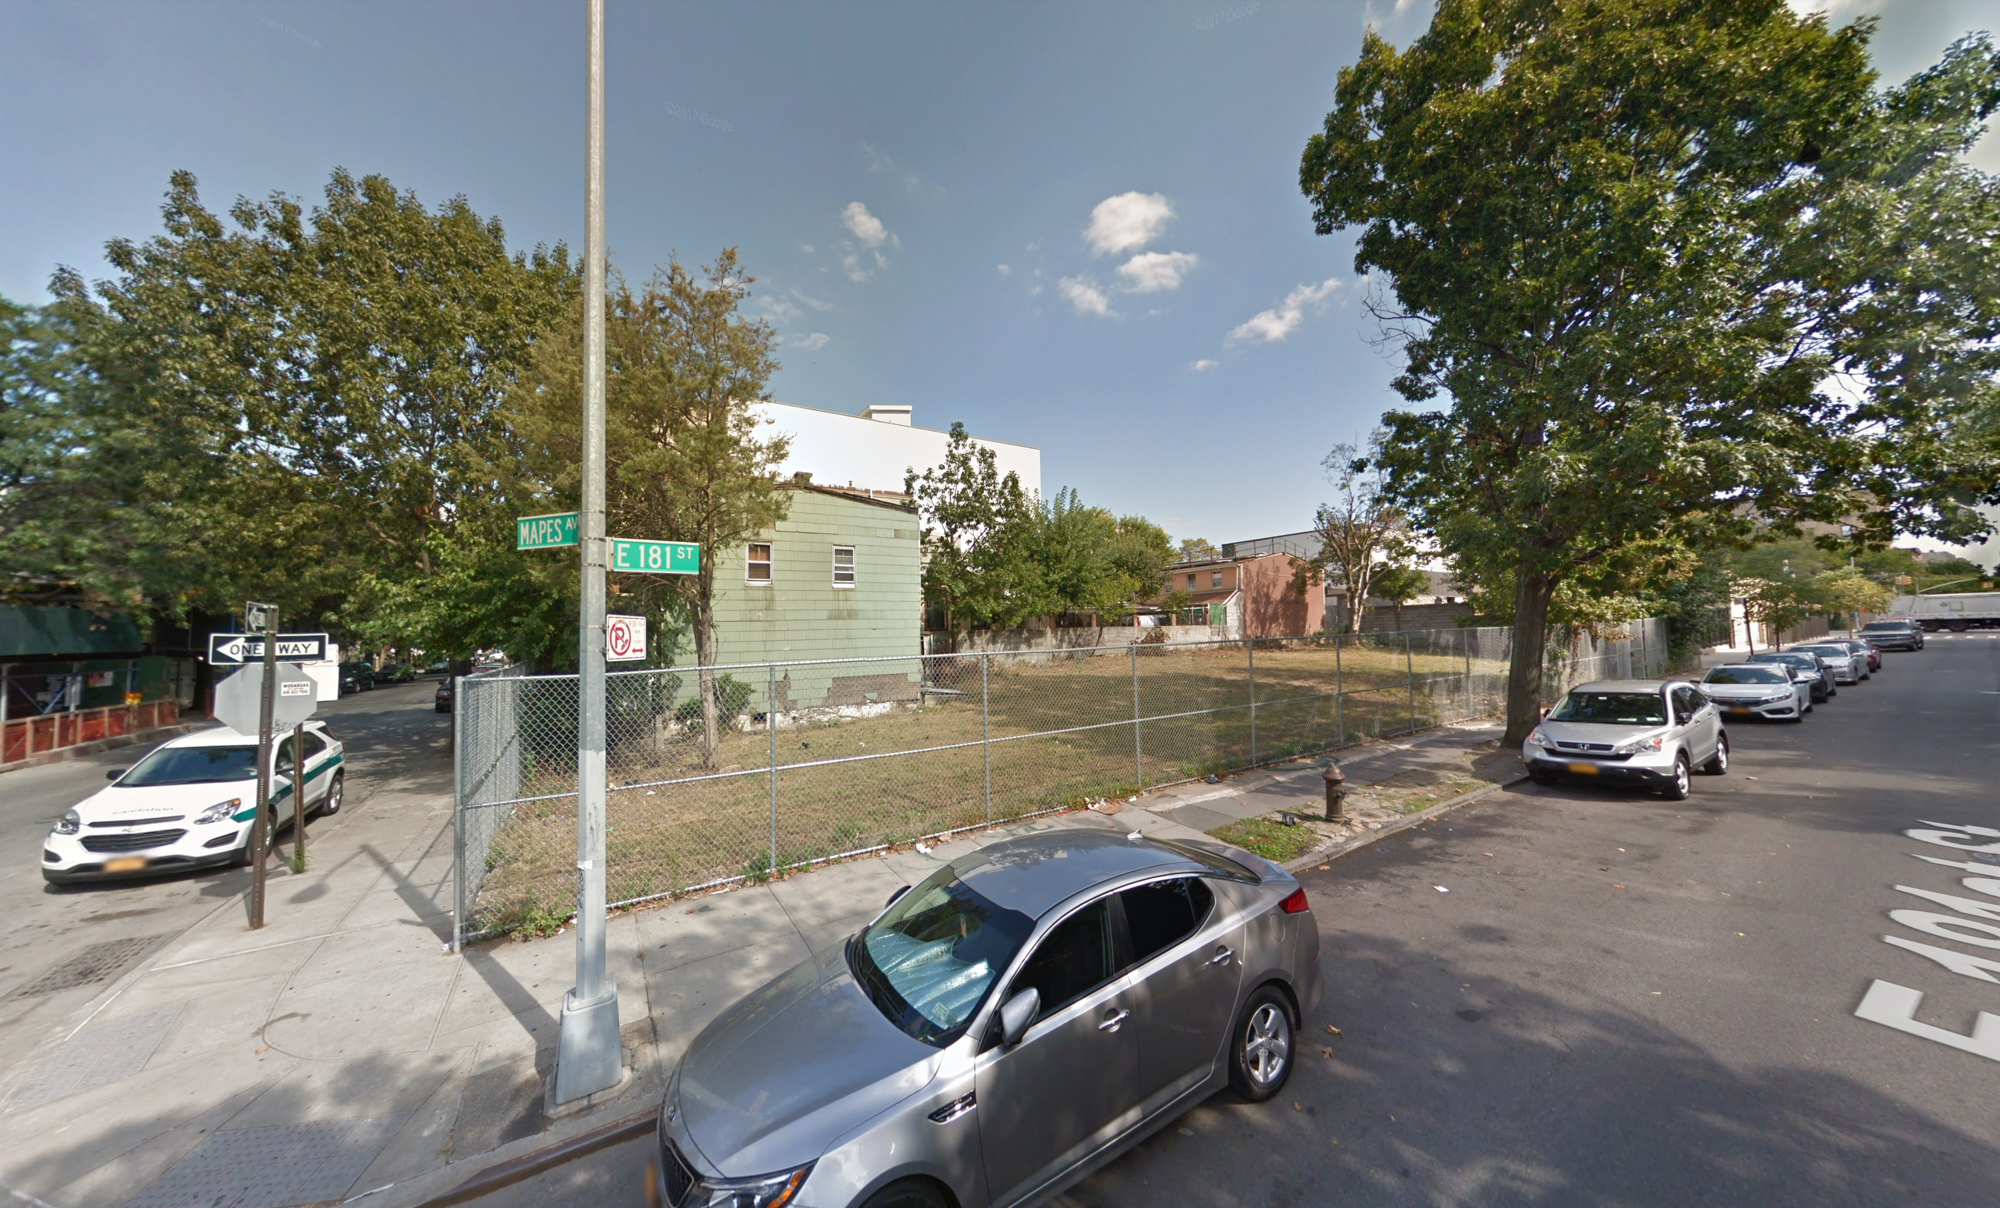 811 East 181st Street, via Google Maps